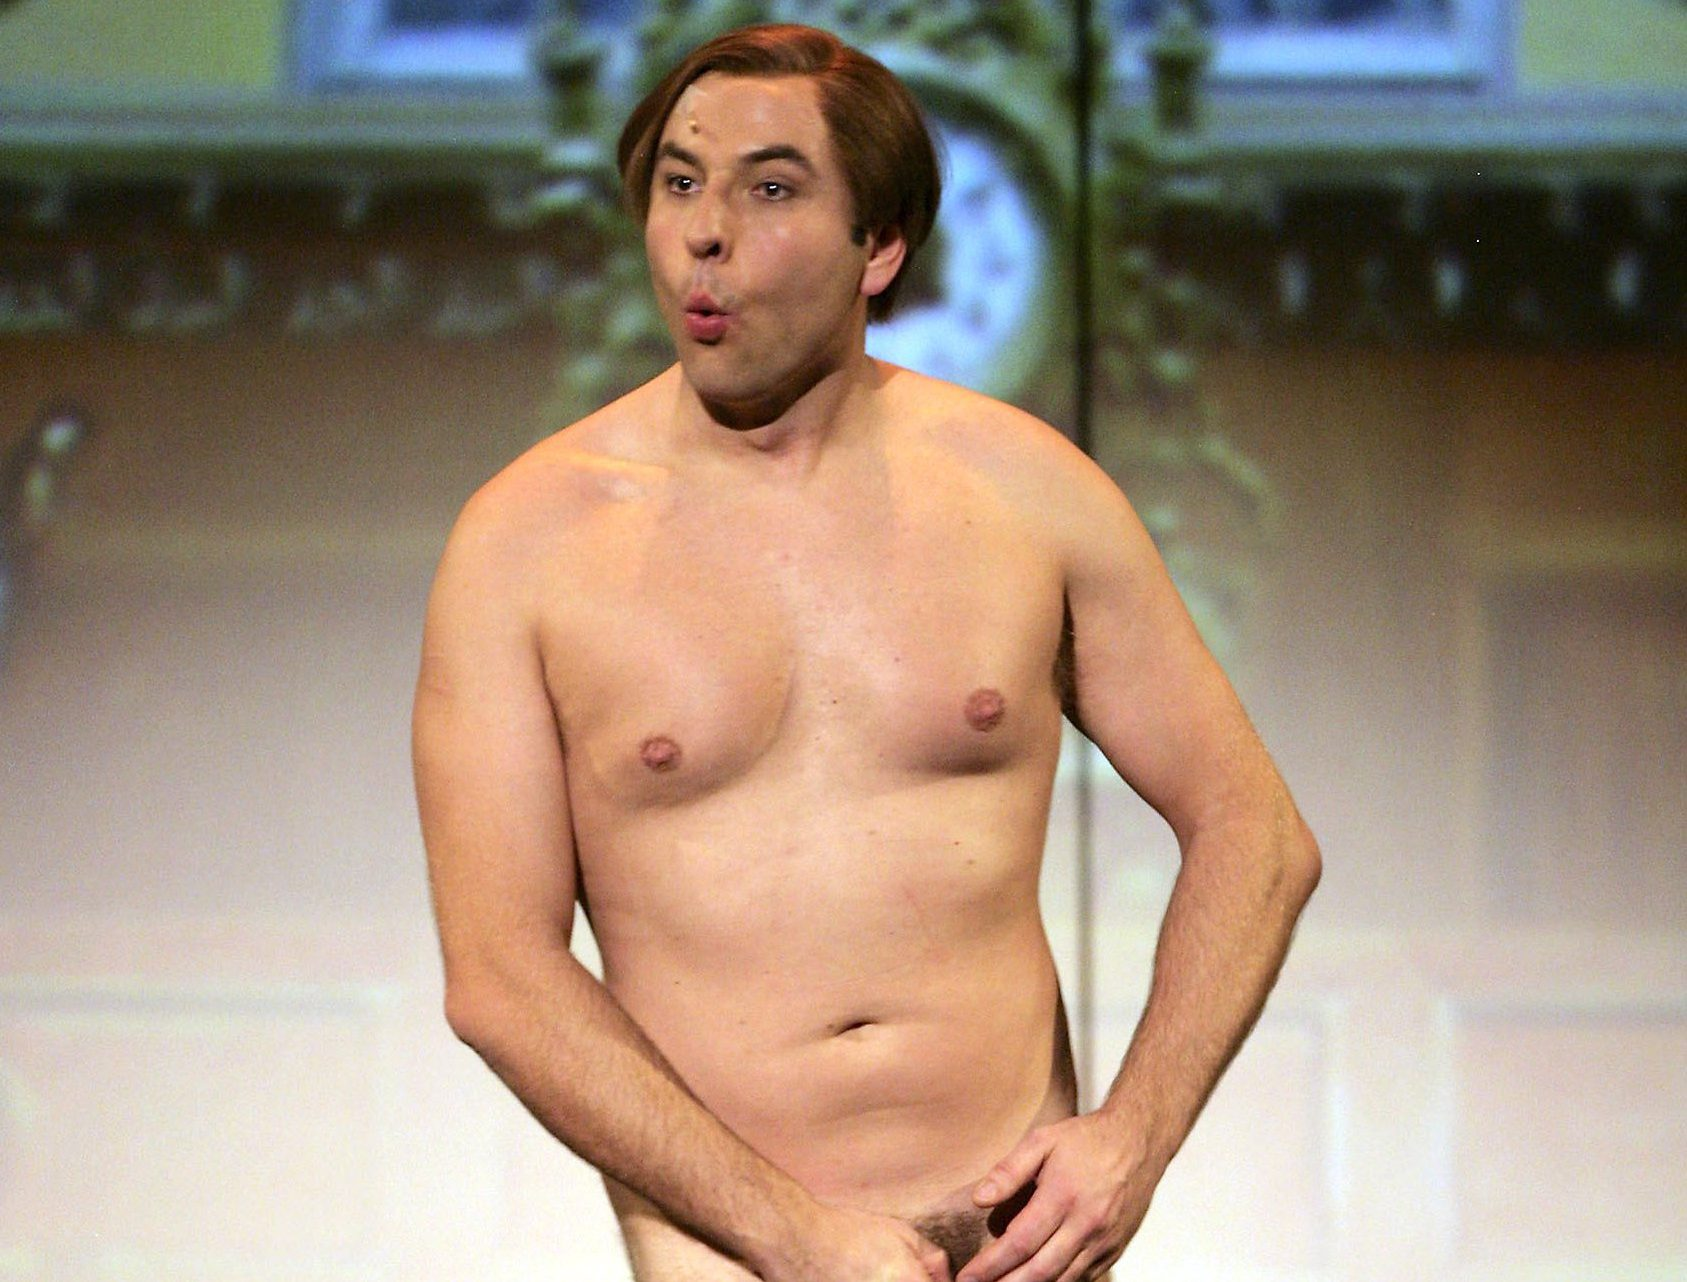 Orlando Bloom isn't the only star to get naked on stage: From Daniel Radcliffe to David Walliams